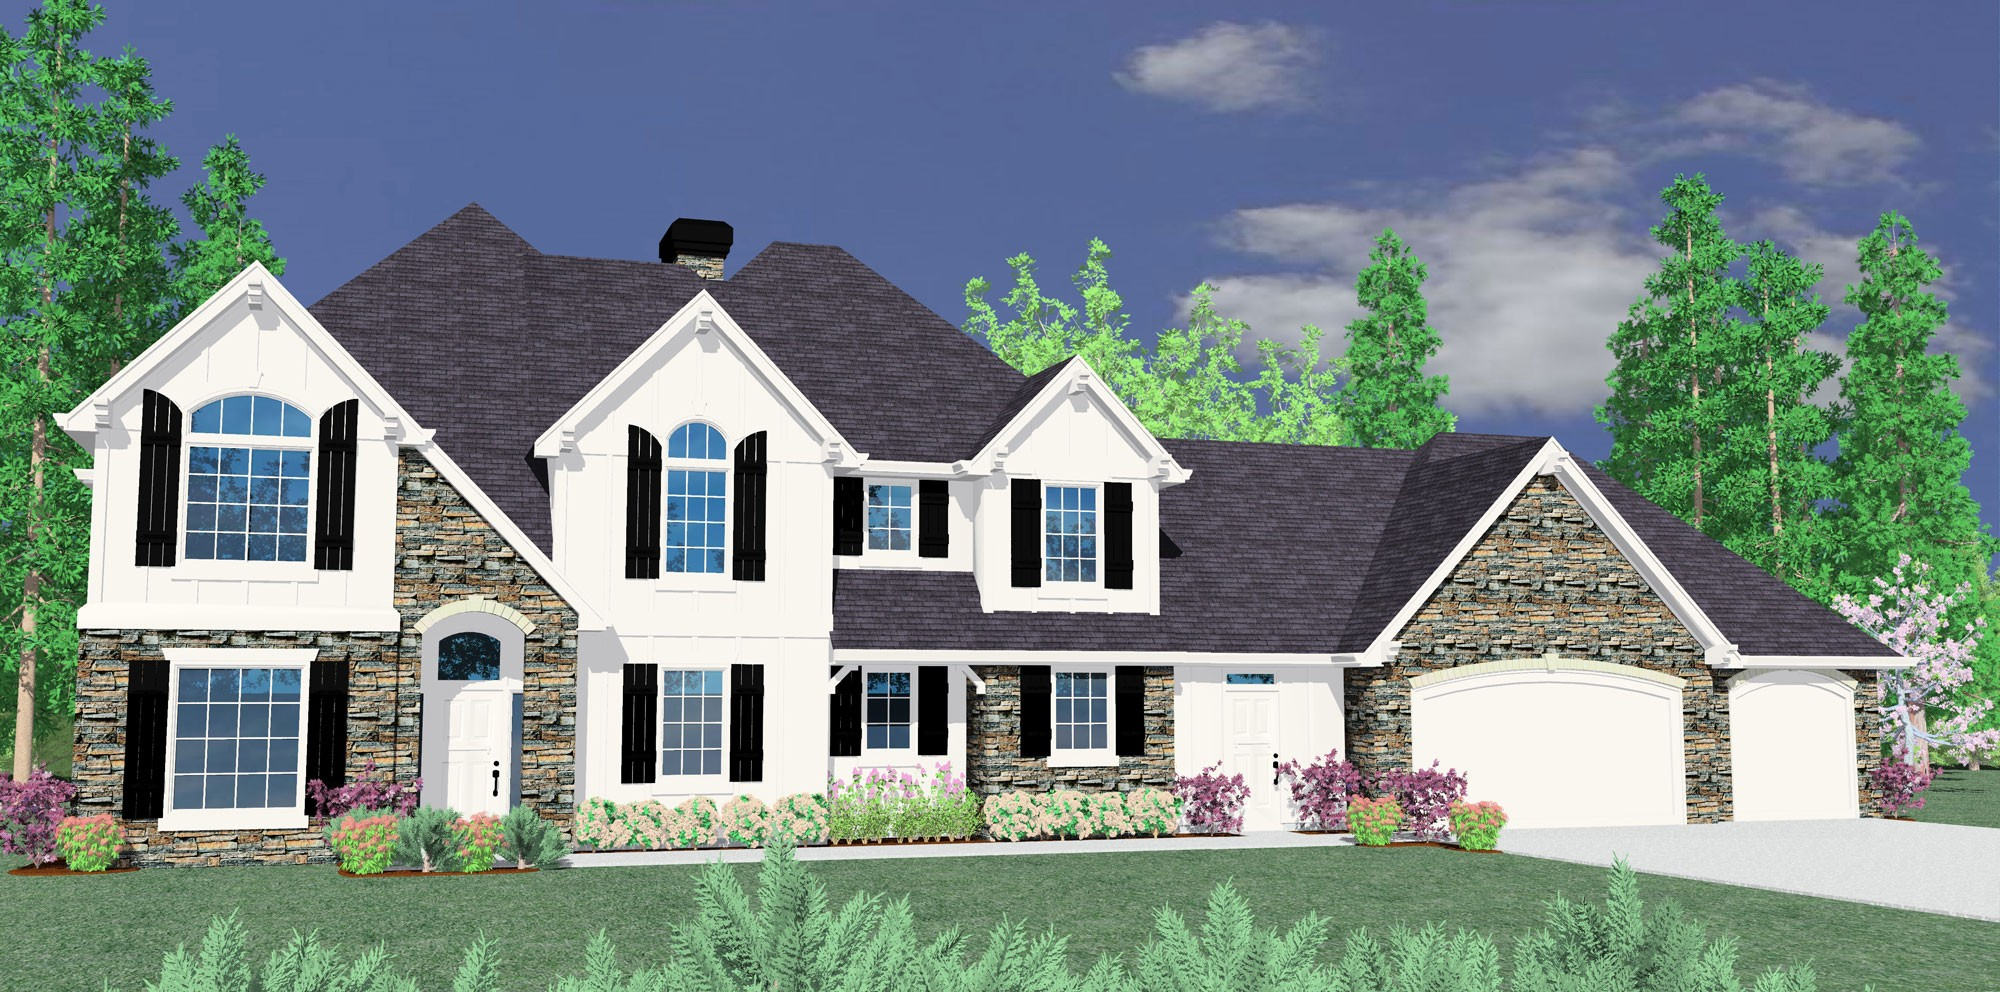 M 4853 house plan old world european style house plans for Old world european house plans